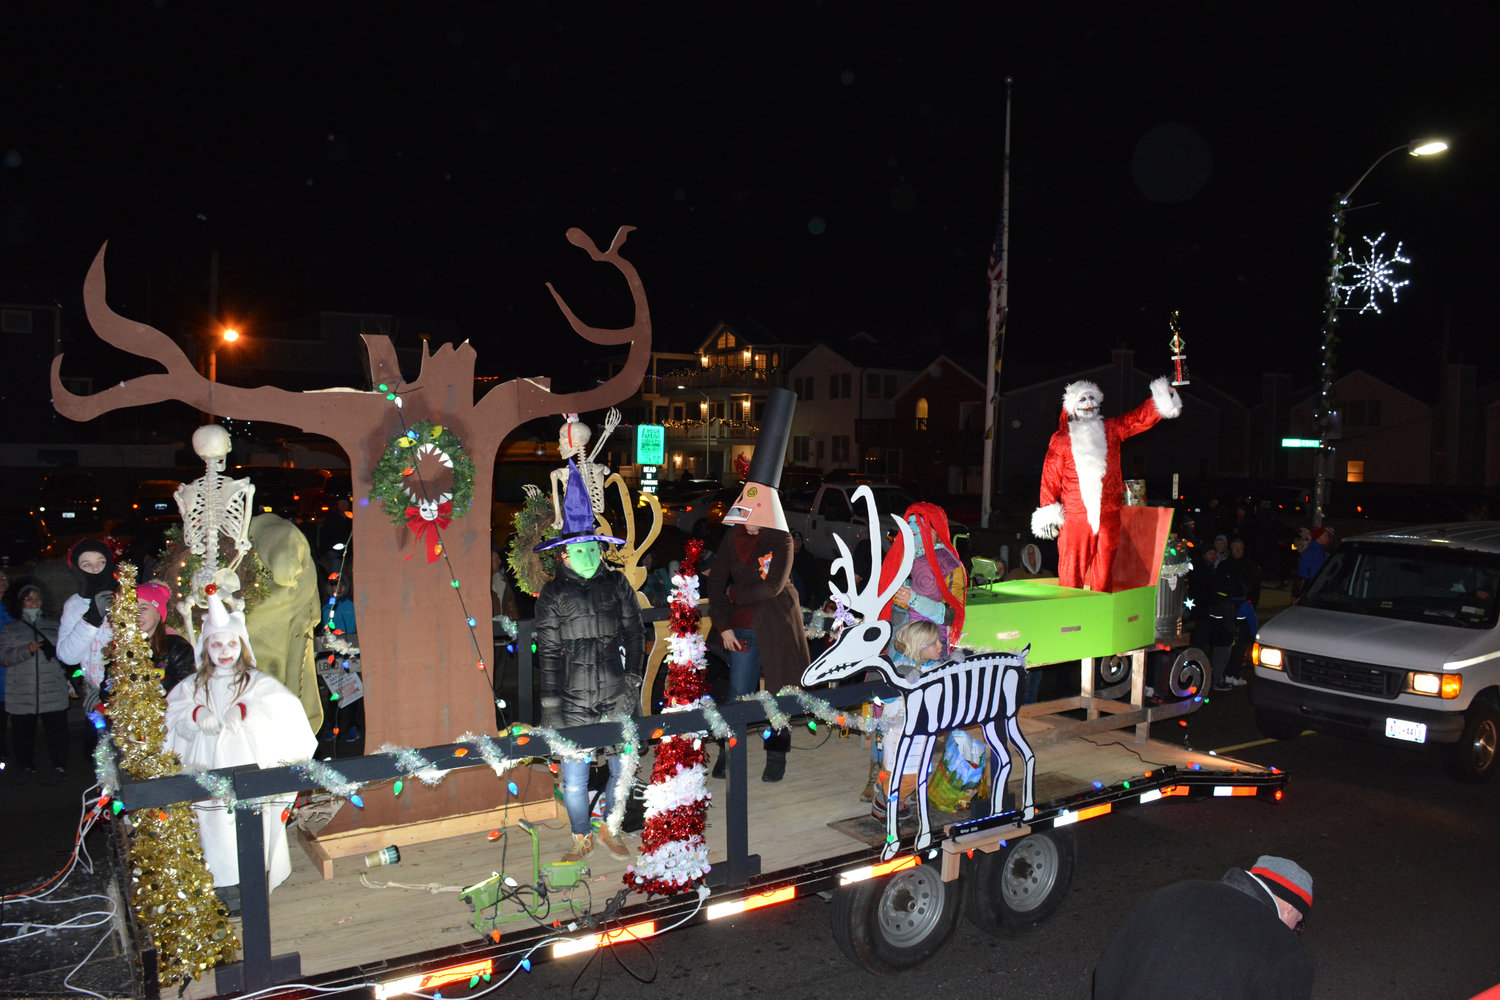 The Nightmare Before Christmas float by A & E Builders won the top prize.